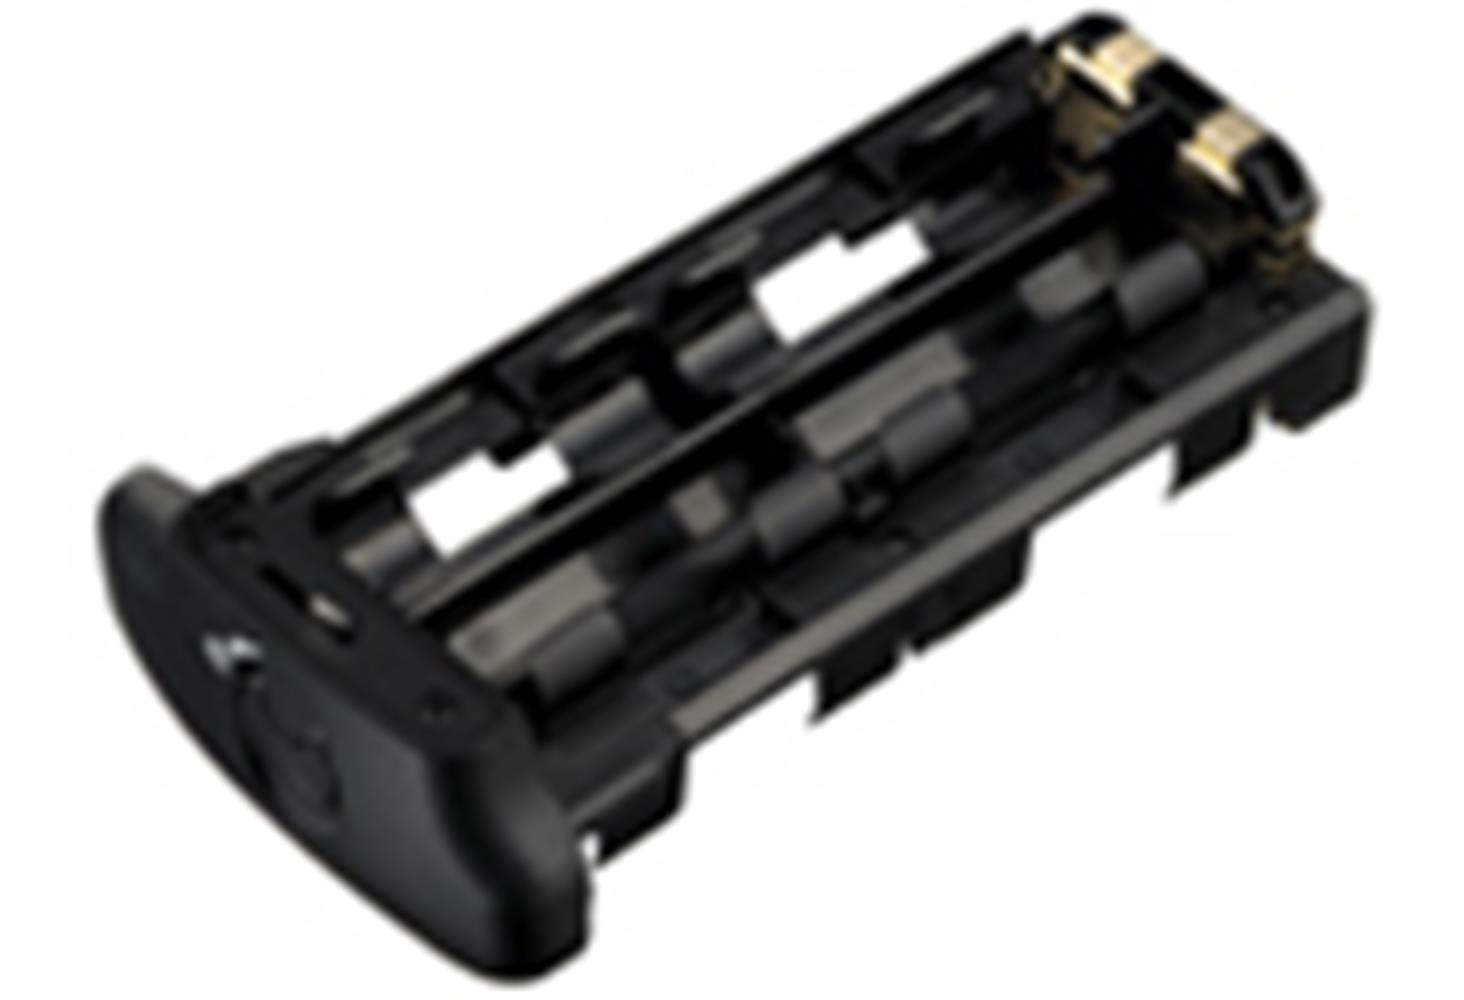 NIKON MS-D10 AA BATTERY HOLDER FOR MB-D10